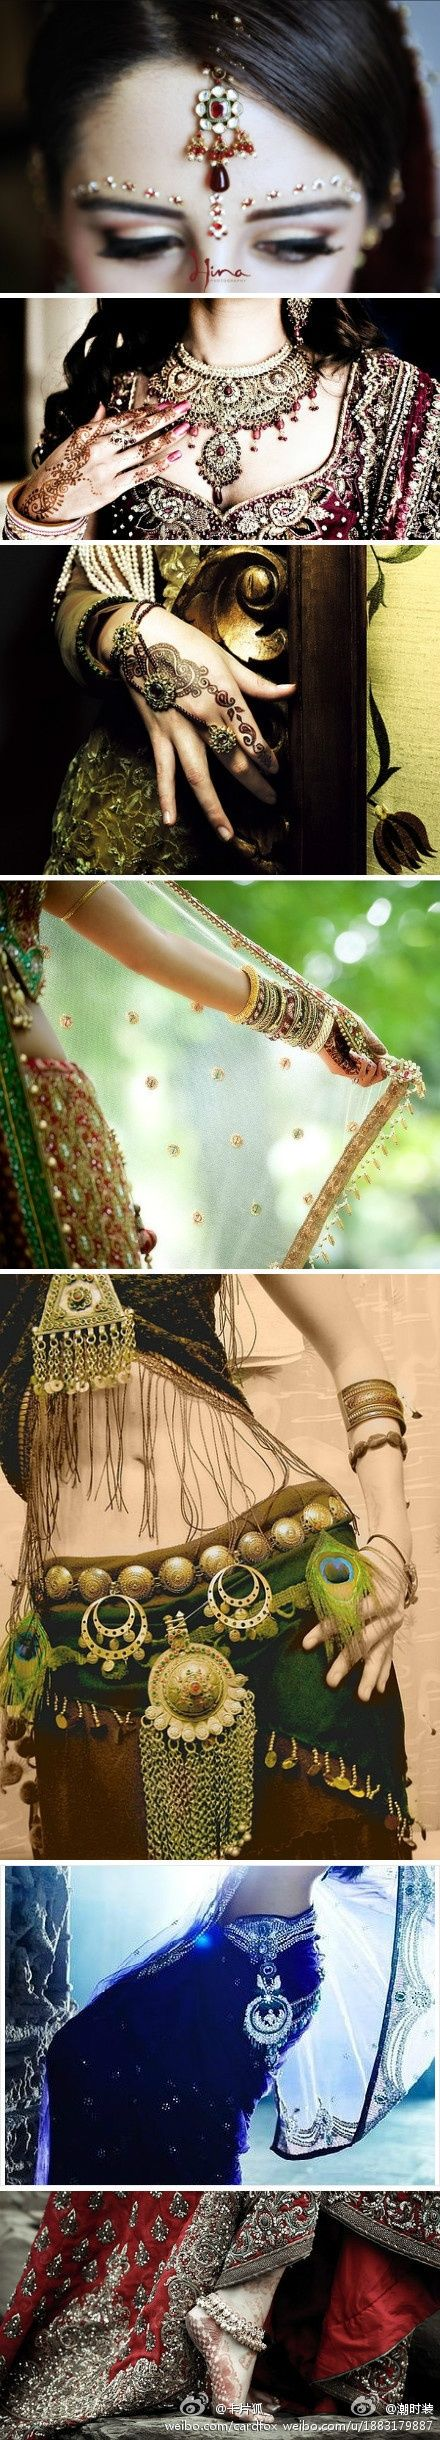 Indian wedding jewelry!!! Love this